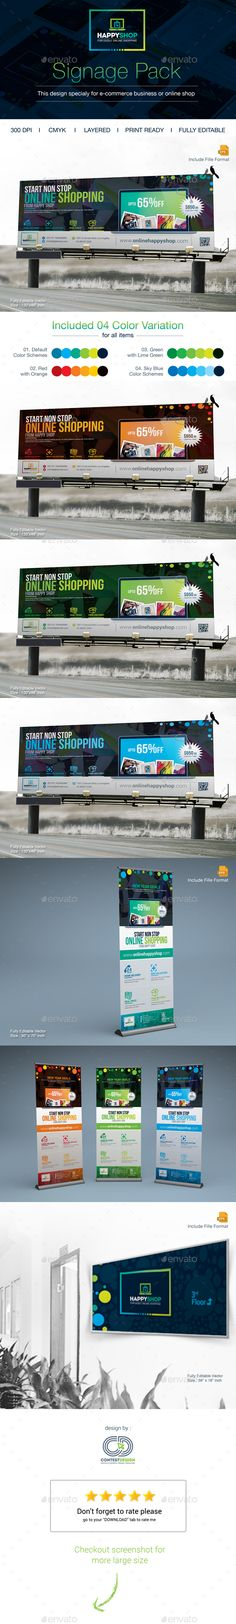 BillBoard : RollUp Banner & Location Board — Vector EPS #medical billboard #Product Billboard • Available here → https://graphicriver.net/item/billboard-rollup-banner-location-board/14466040?ref=pxcr